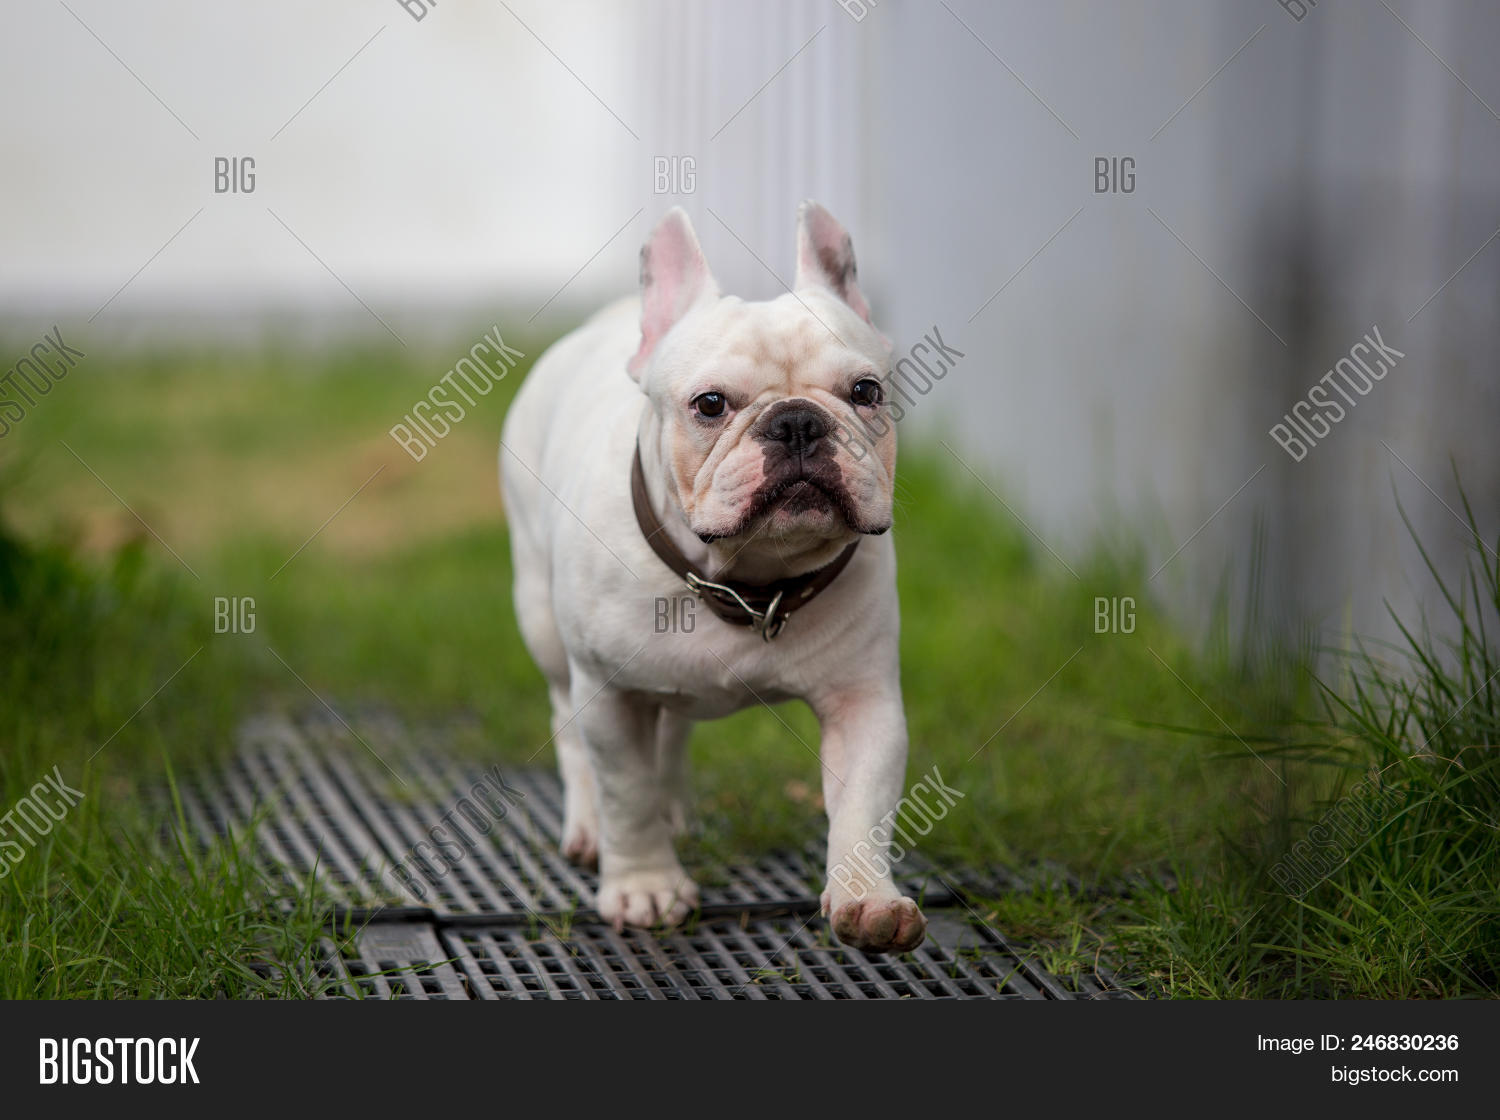 Cute Baby French Image Photo Free Trial Bigstock